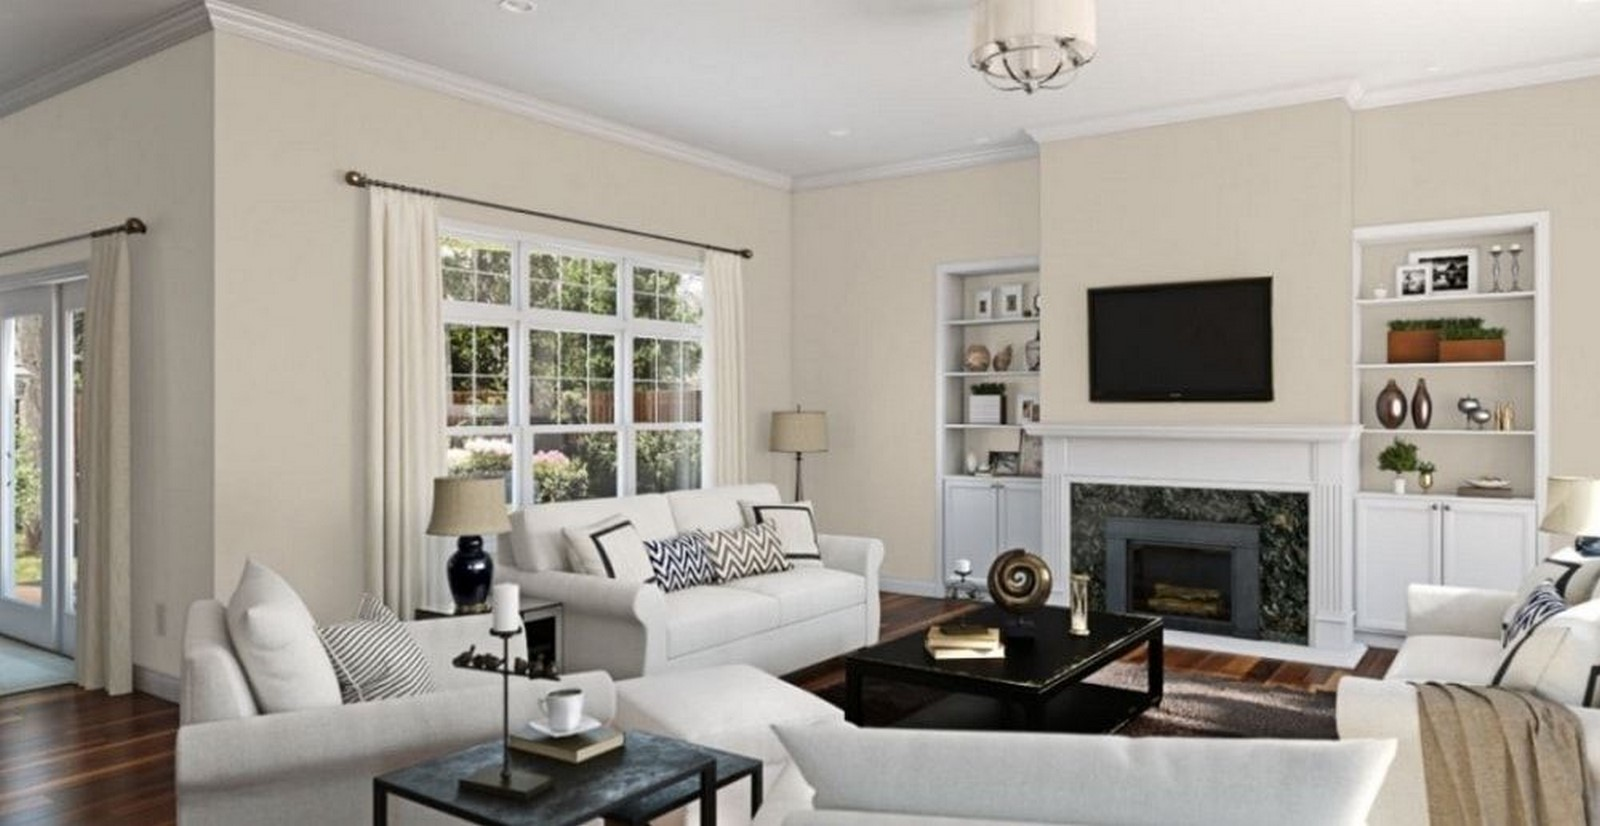 20 Neutral colors to use for interiors - Sheet2